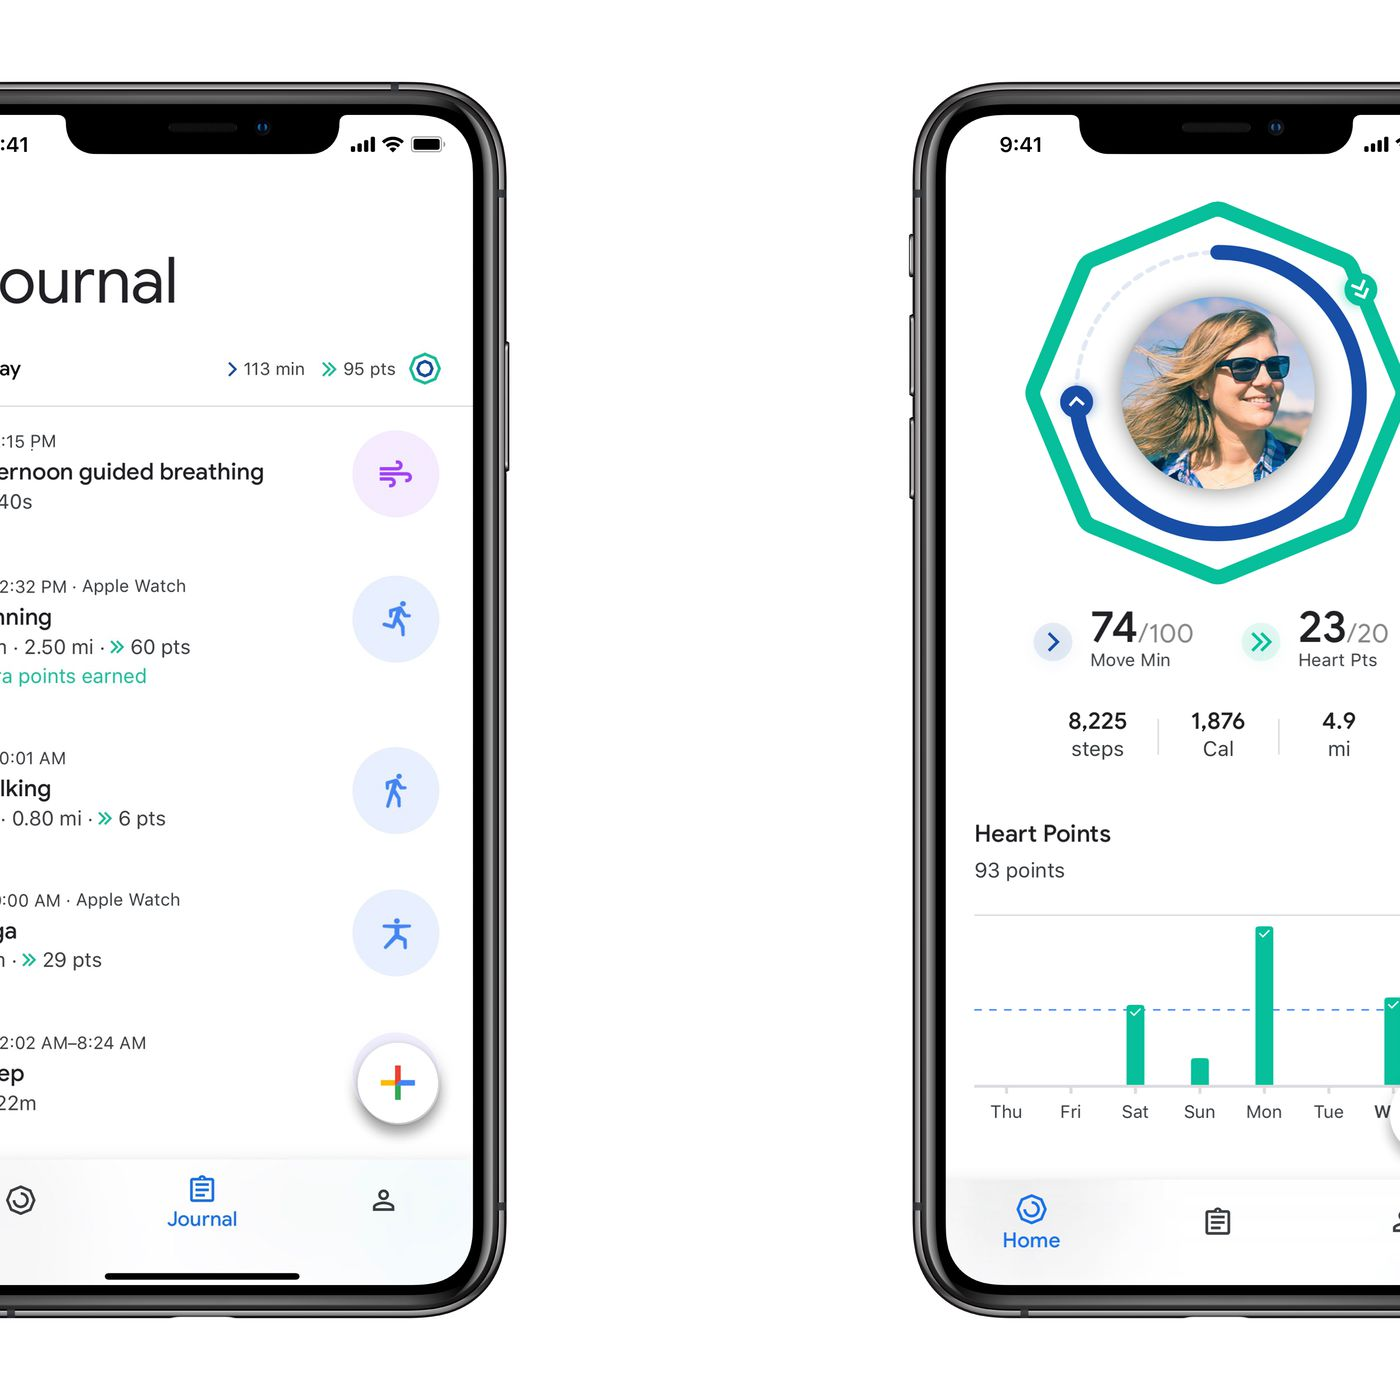 theverge.com - Jon Porter - Google brings its redesigned fitness app to iOS